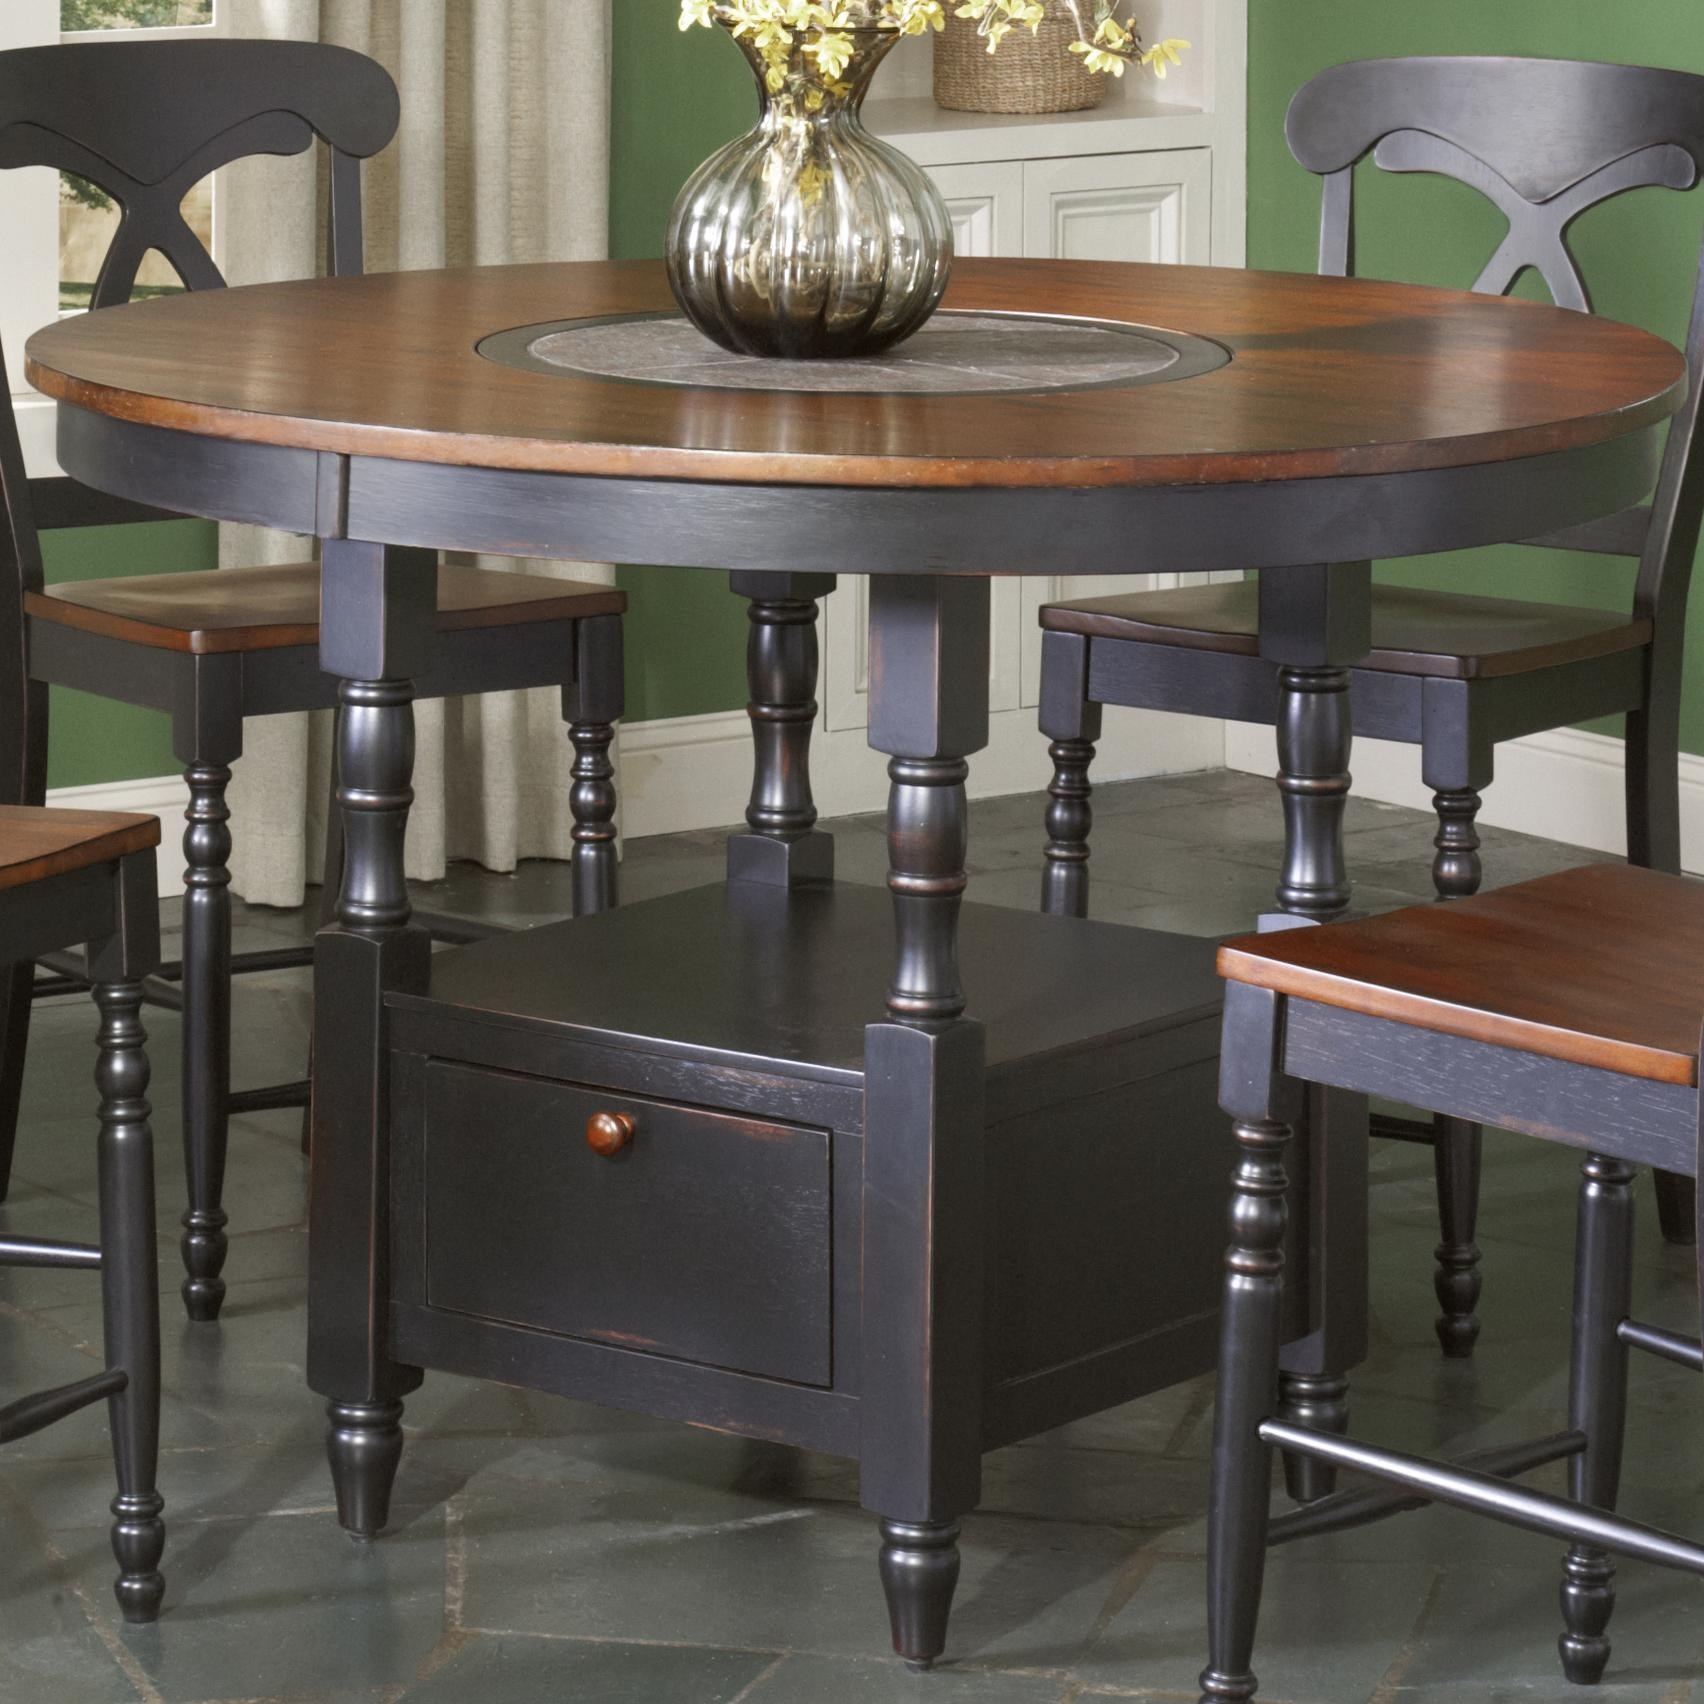 phillip collection furniture. Largo PhillipCounter Height Table With Lazy Susan Phillip Collection Furniture U